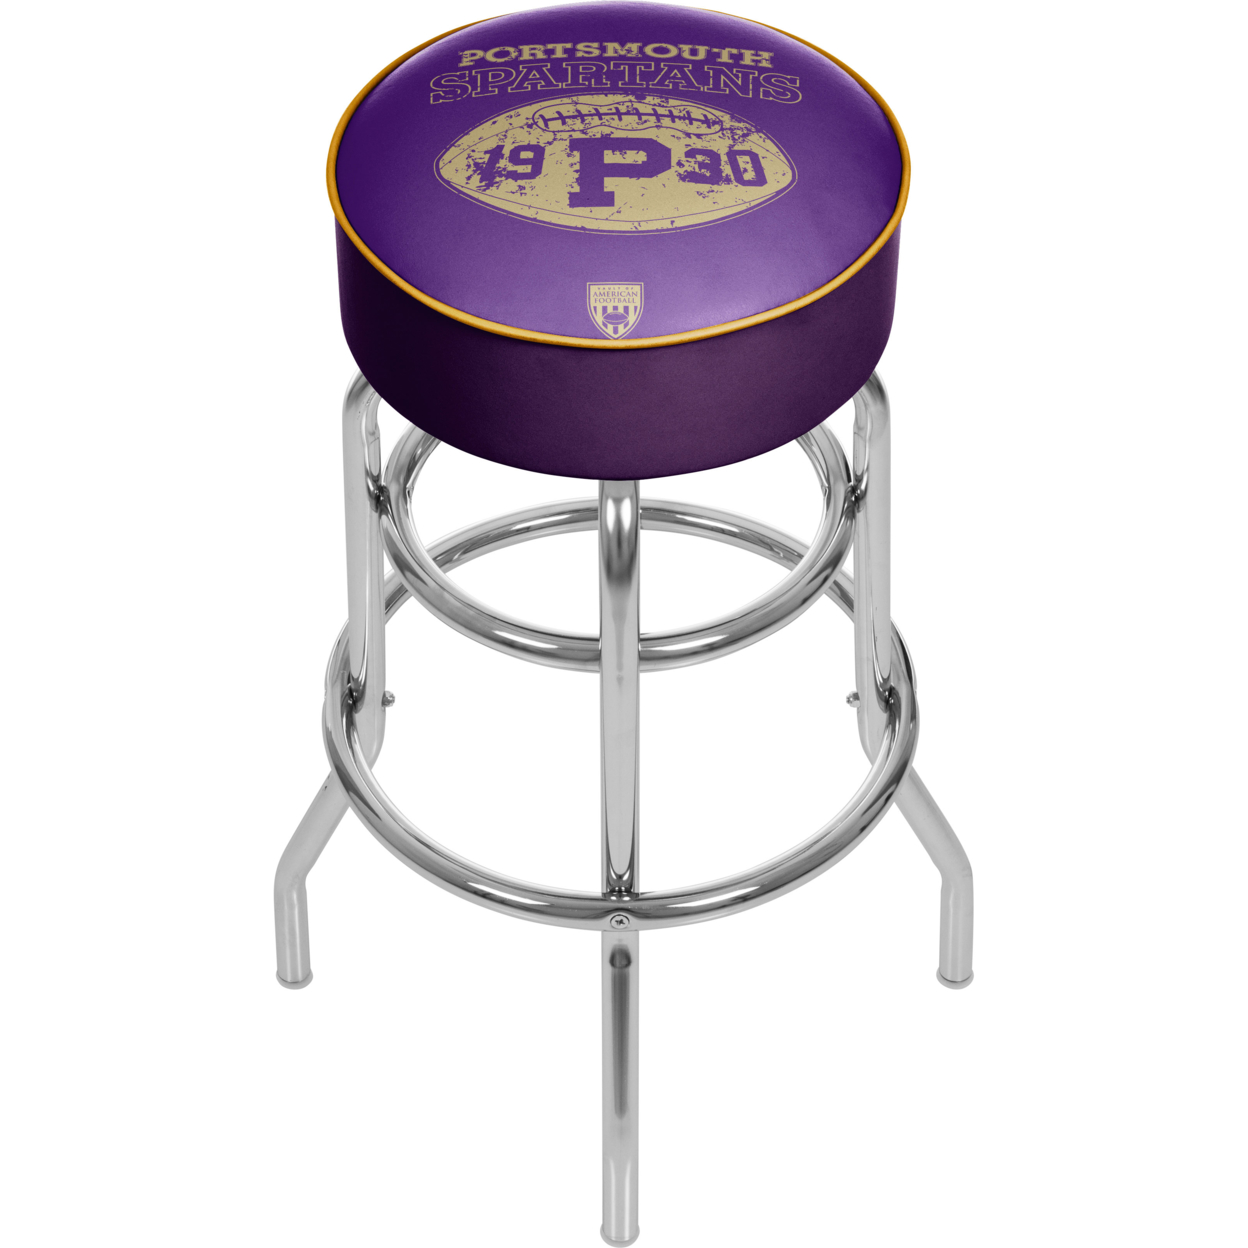 VAF Portsmouth Spartans Padded Swivel Bar Stool 30 Inches High father john misty portsmouth